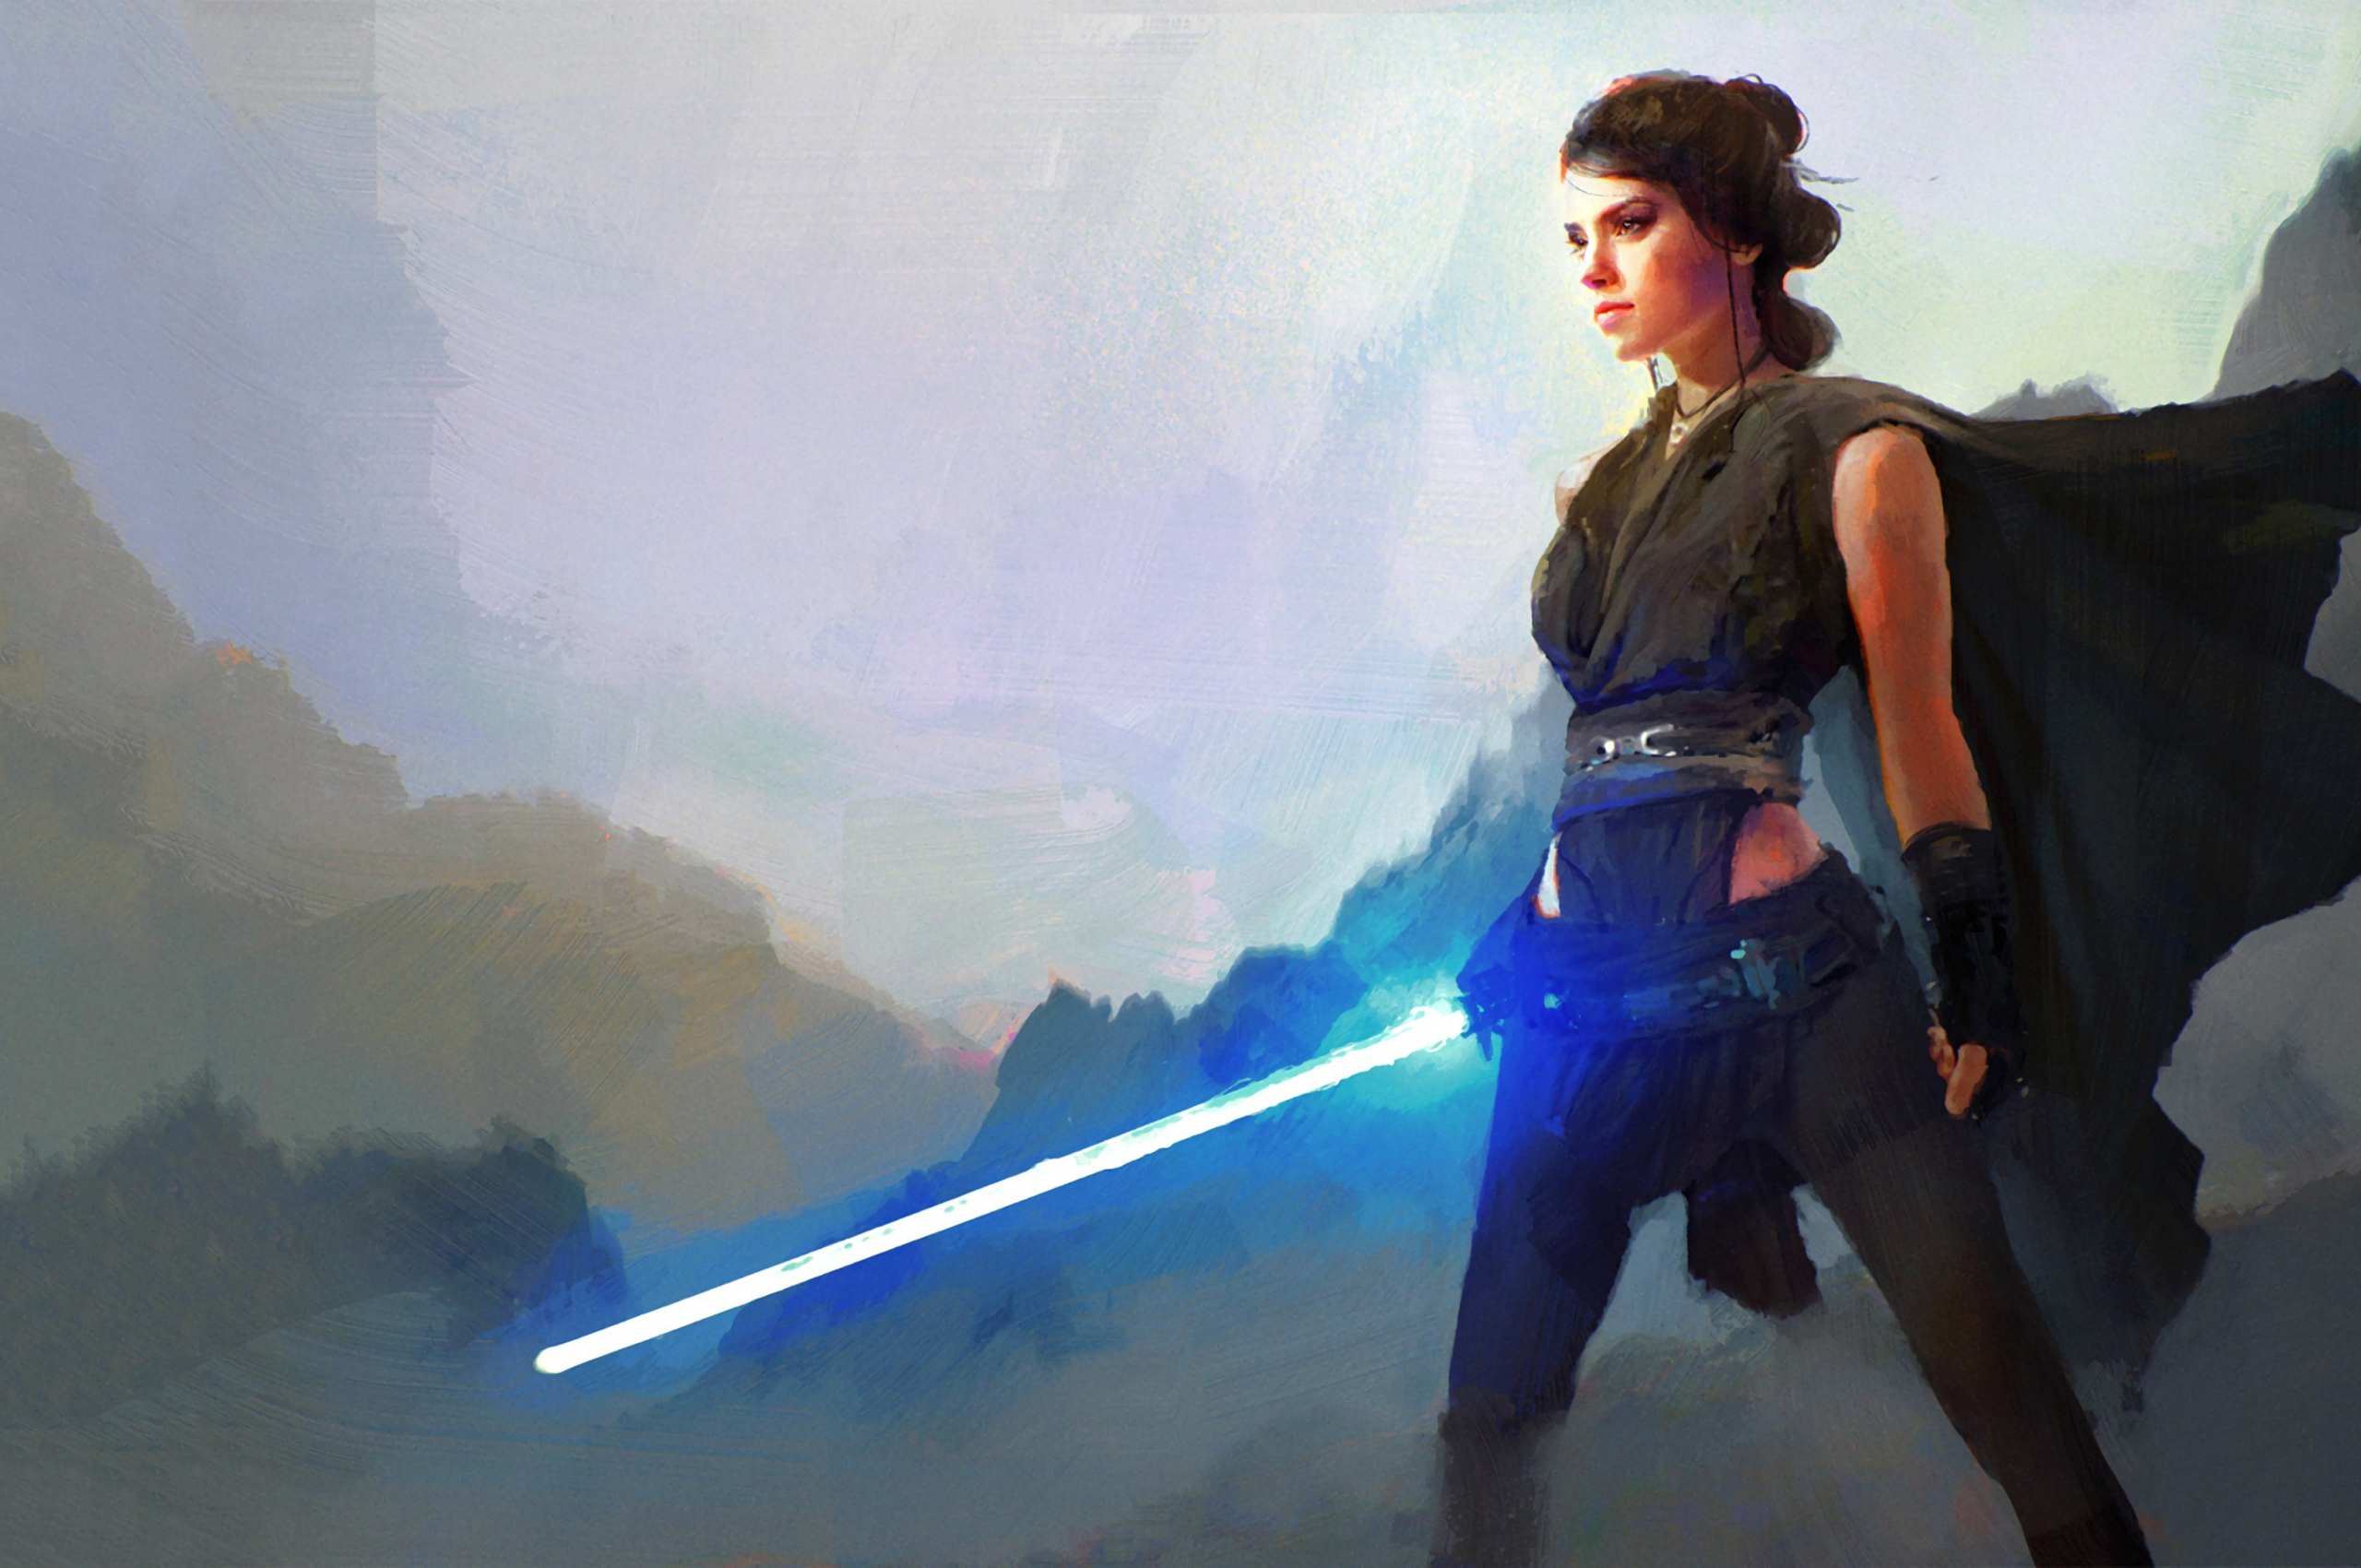 Free Download The Last Jedi Rey With Lightsaber Pc Wallpaper